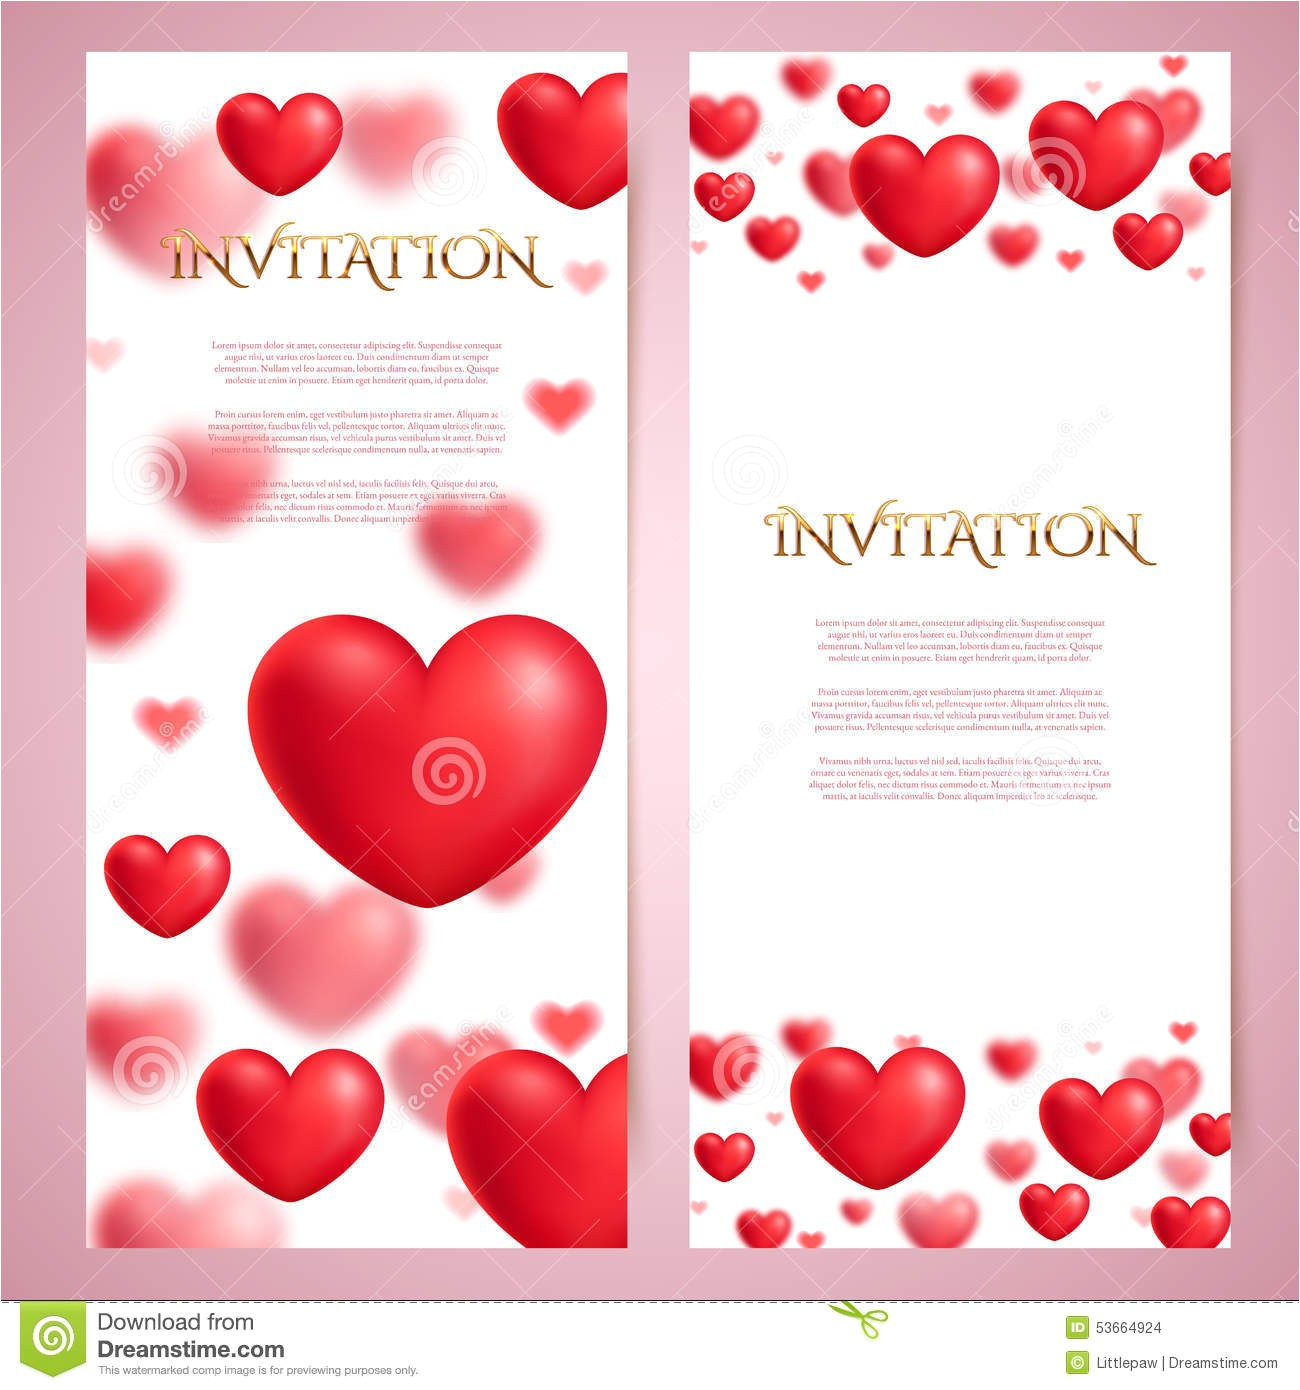 Romantic Gift Certificate Template Voucher Templates with Red Bow Ribbons Design Usable for